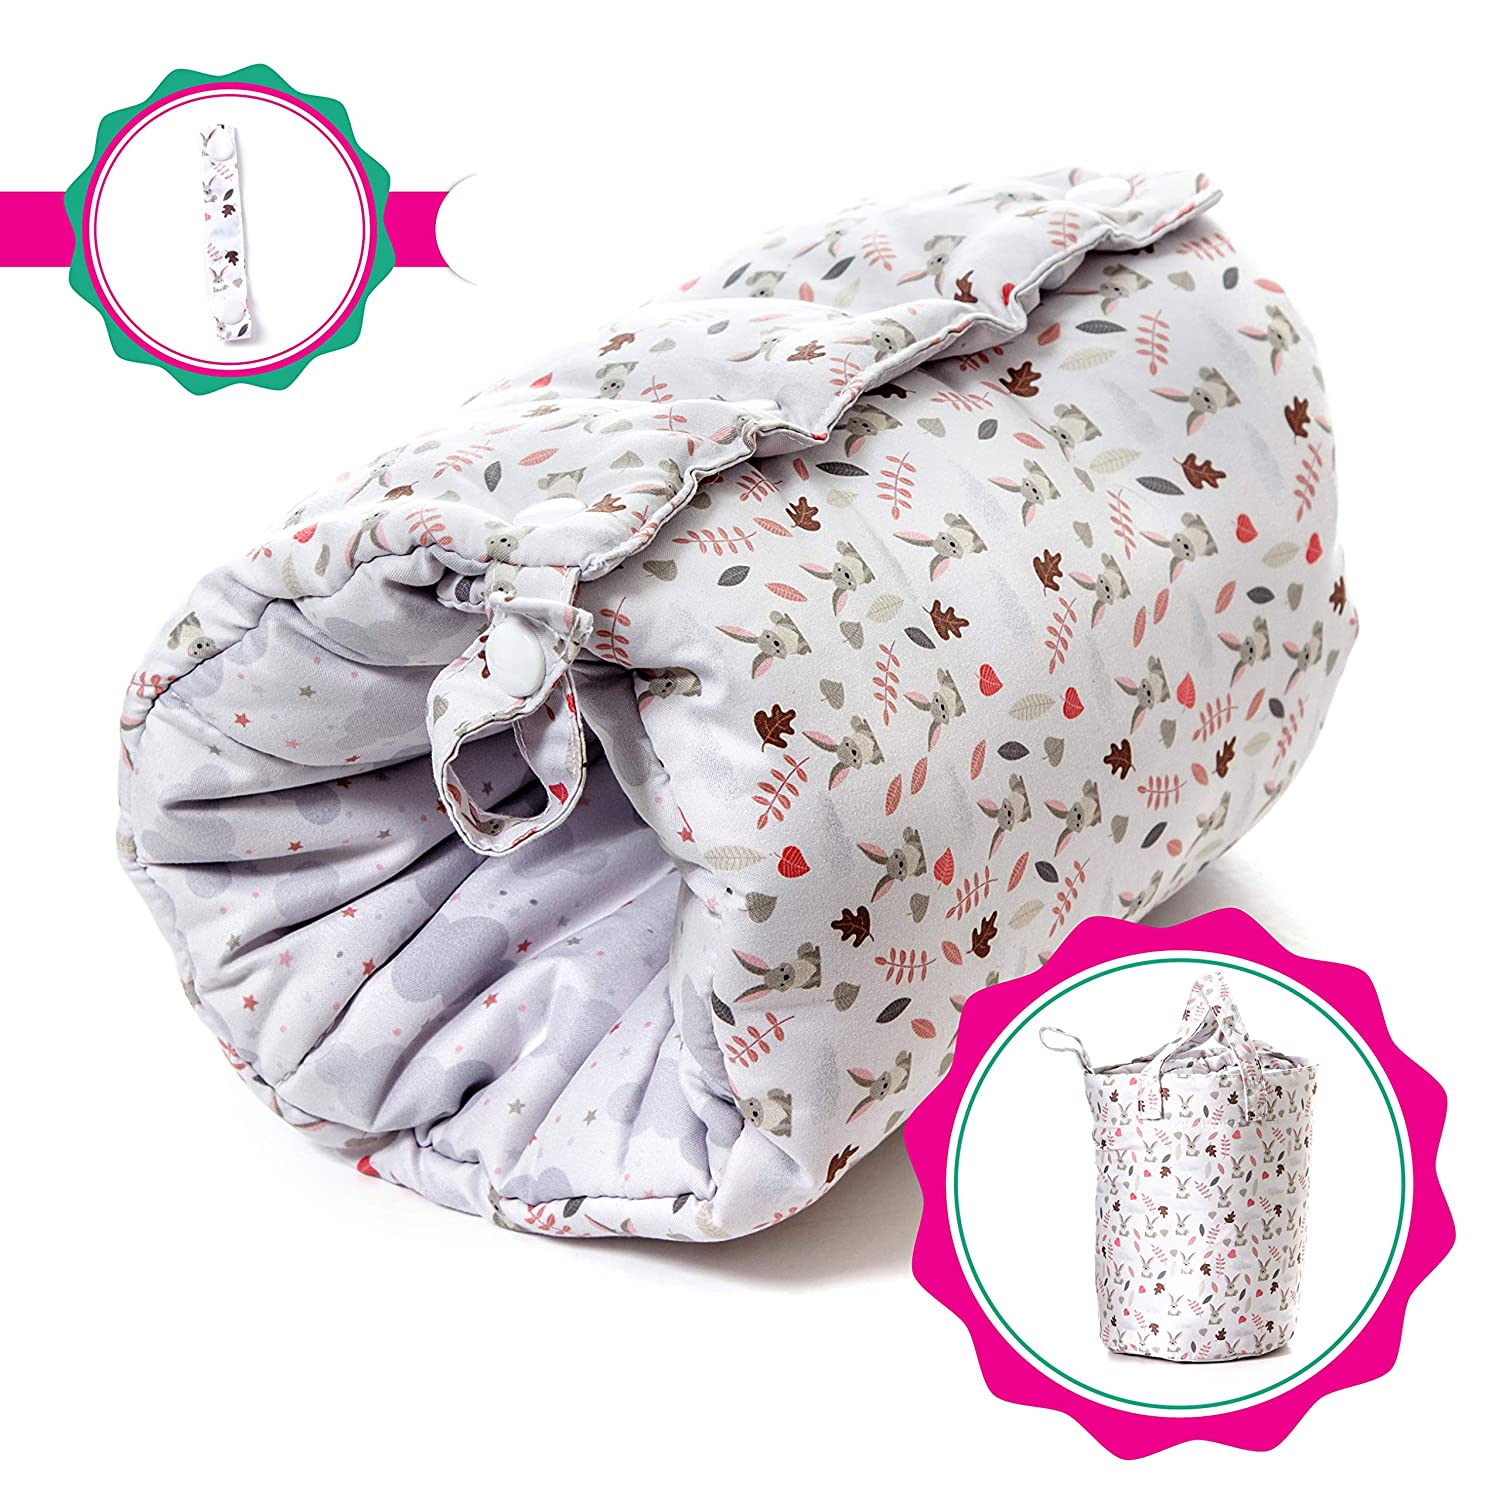 Travel Friendly Nursing Pillow, Slip On Arm Breastfeeding Pillow for Newborns & Older Babies :: Soft, Safe & Comfortable :: Reversible, Multi Use Nursing Cushion :: Includes Matching Carry Bag Fellow Pillow FP-PERENT